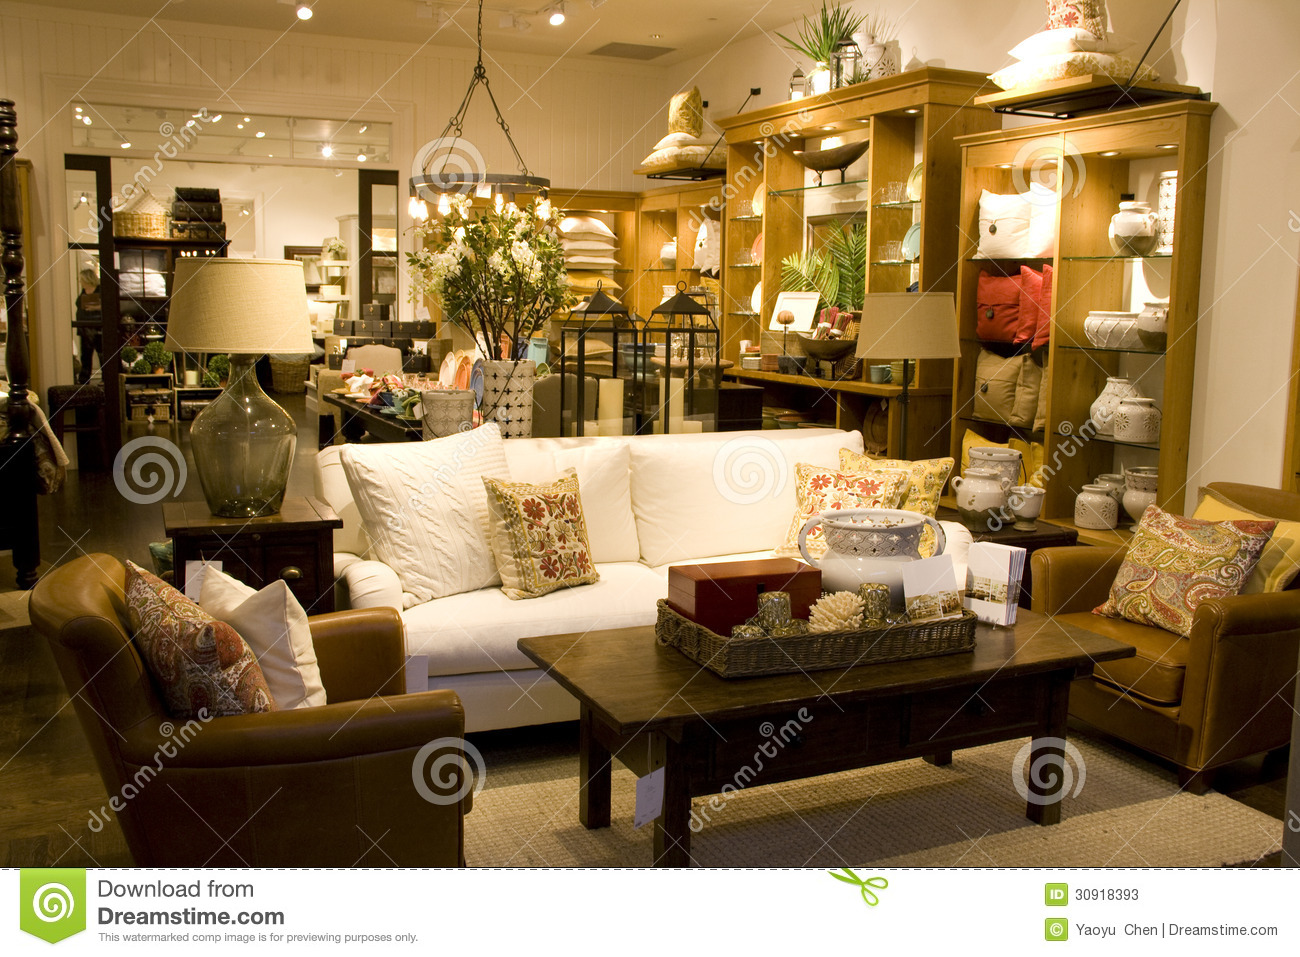 Furniture and home decor store stock image image 30918393 for Trendy home furnishings